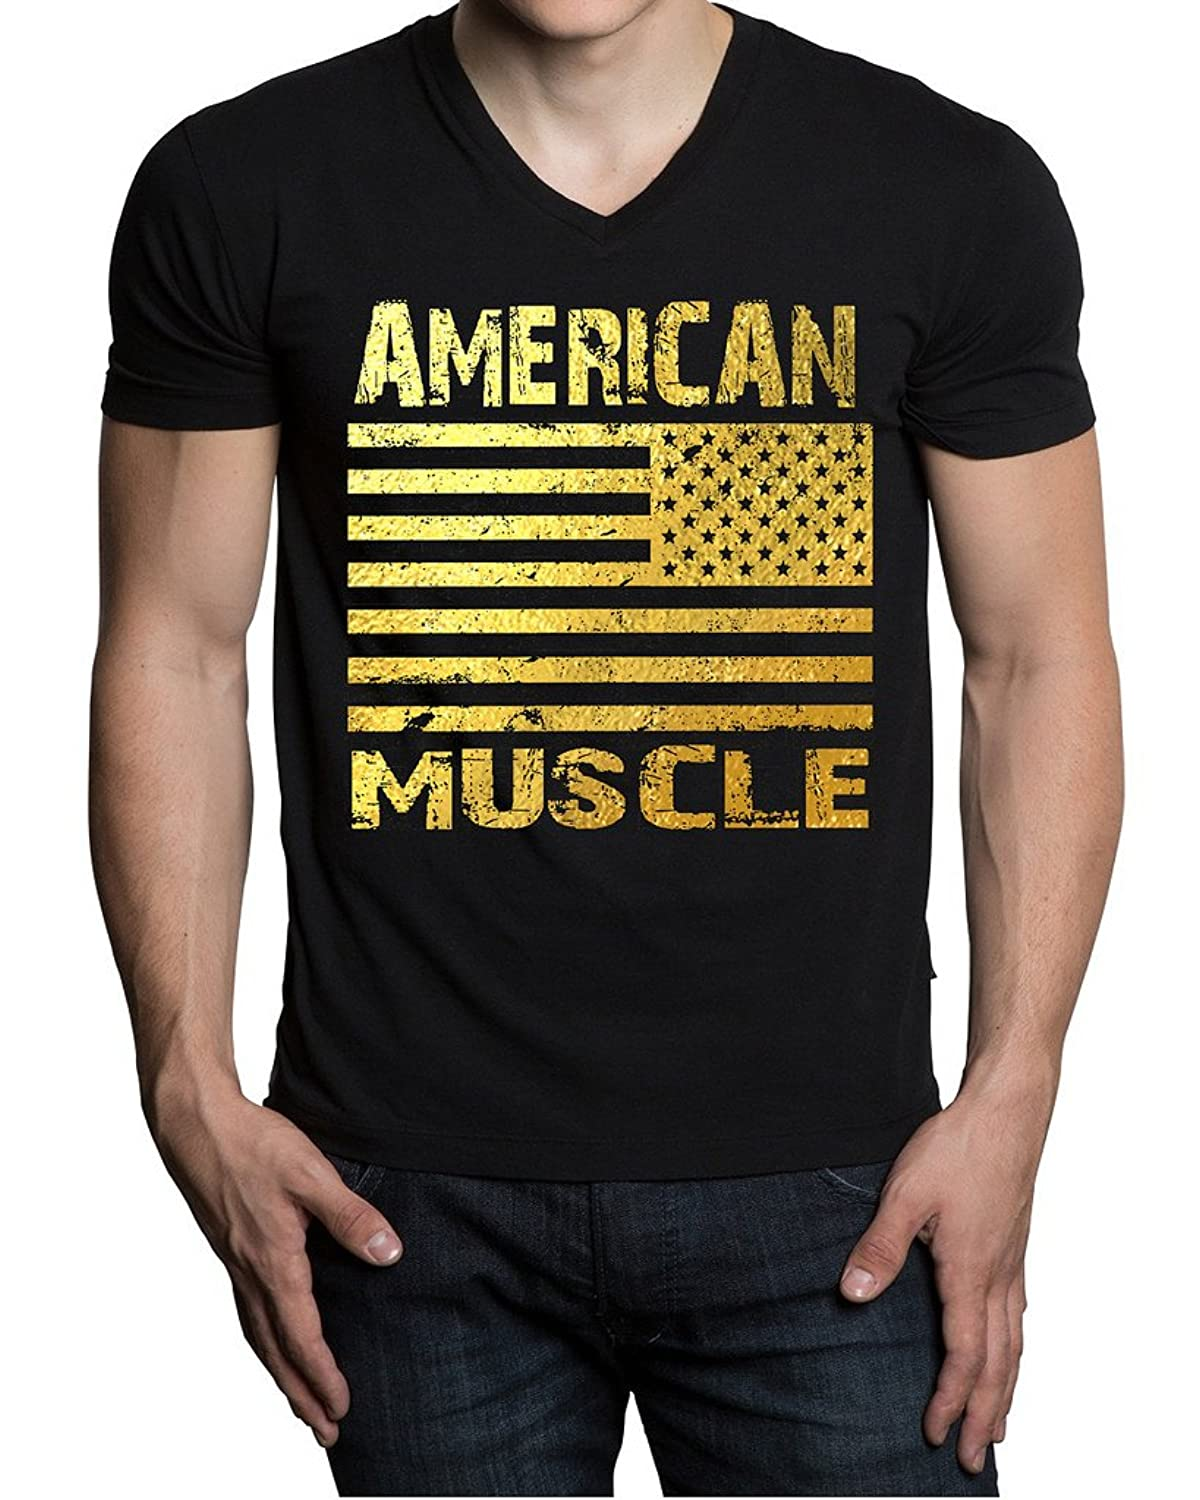 Gold American Muscle US Flag Men's Black V-Neck T-Shirt Black